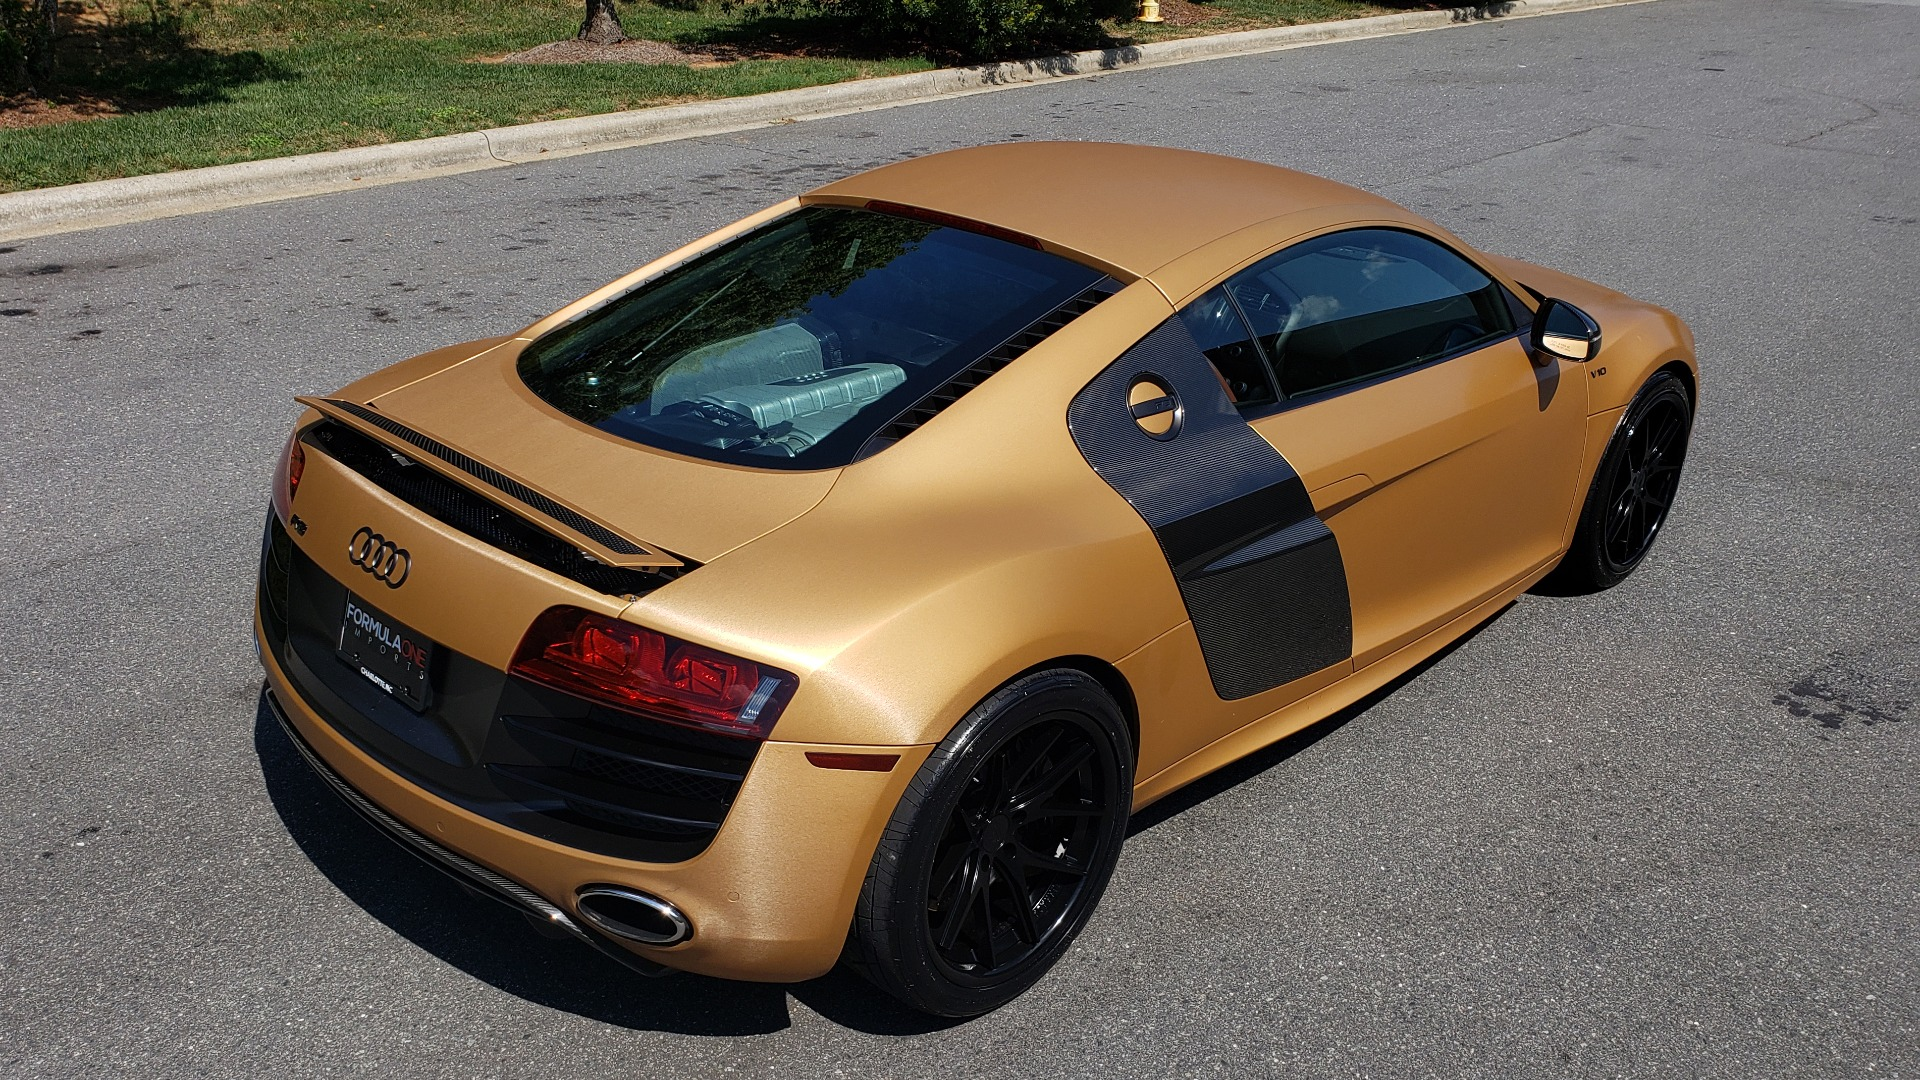 Used 2012 Audi R8 V10 5.2L / CUST WRAP BRUSHED BRONZE / NAV / B&O SOUND / CUST 19IN WHLS for sale $79,999 at Formula Imports in Charlotte NC 28227 3